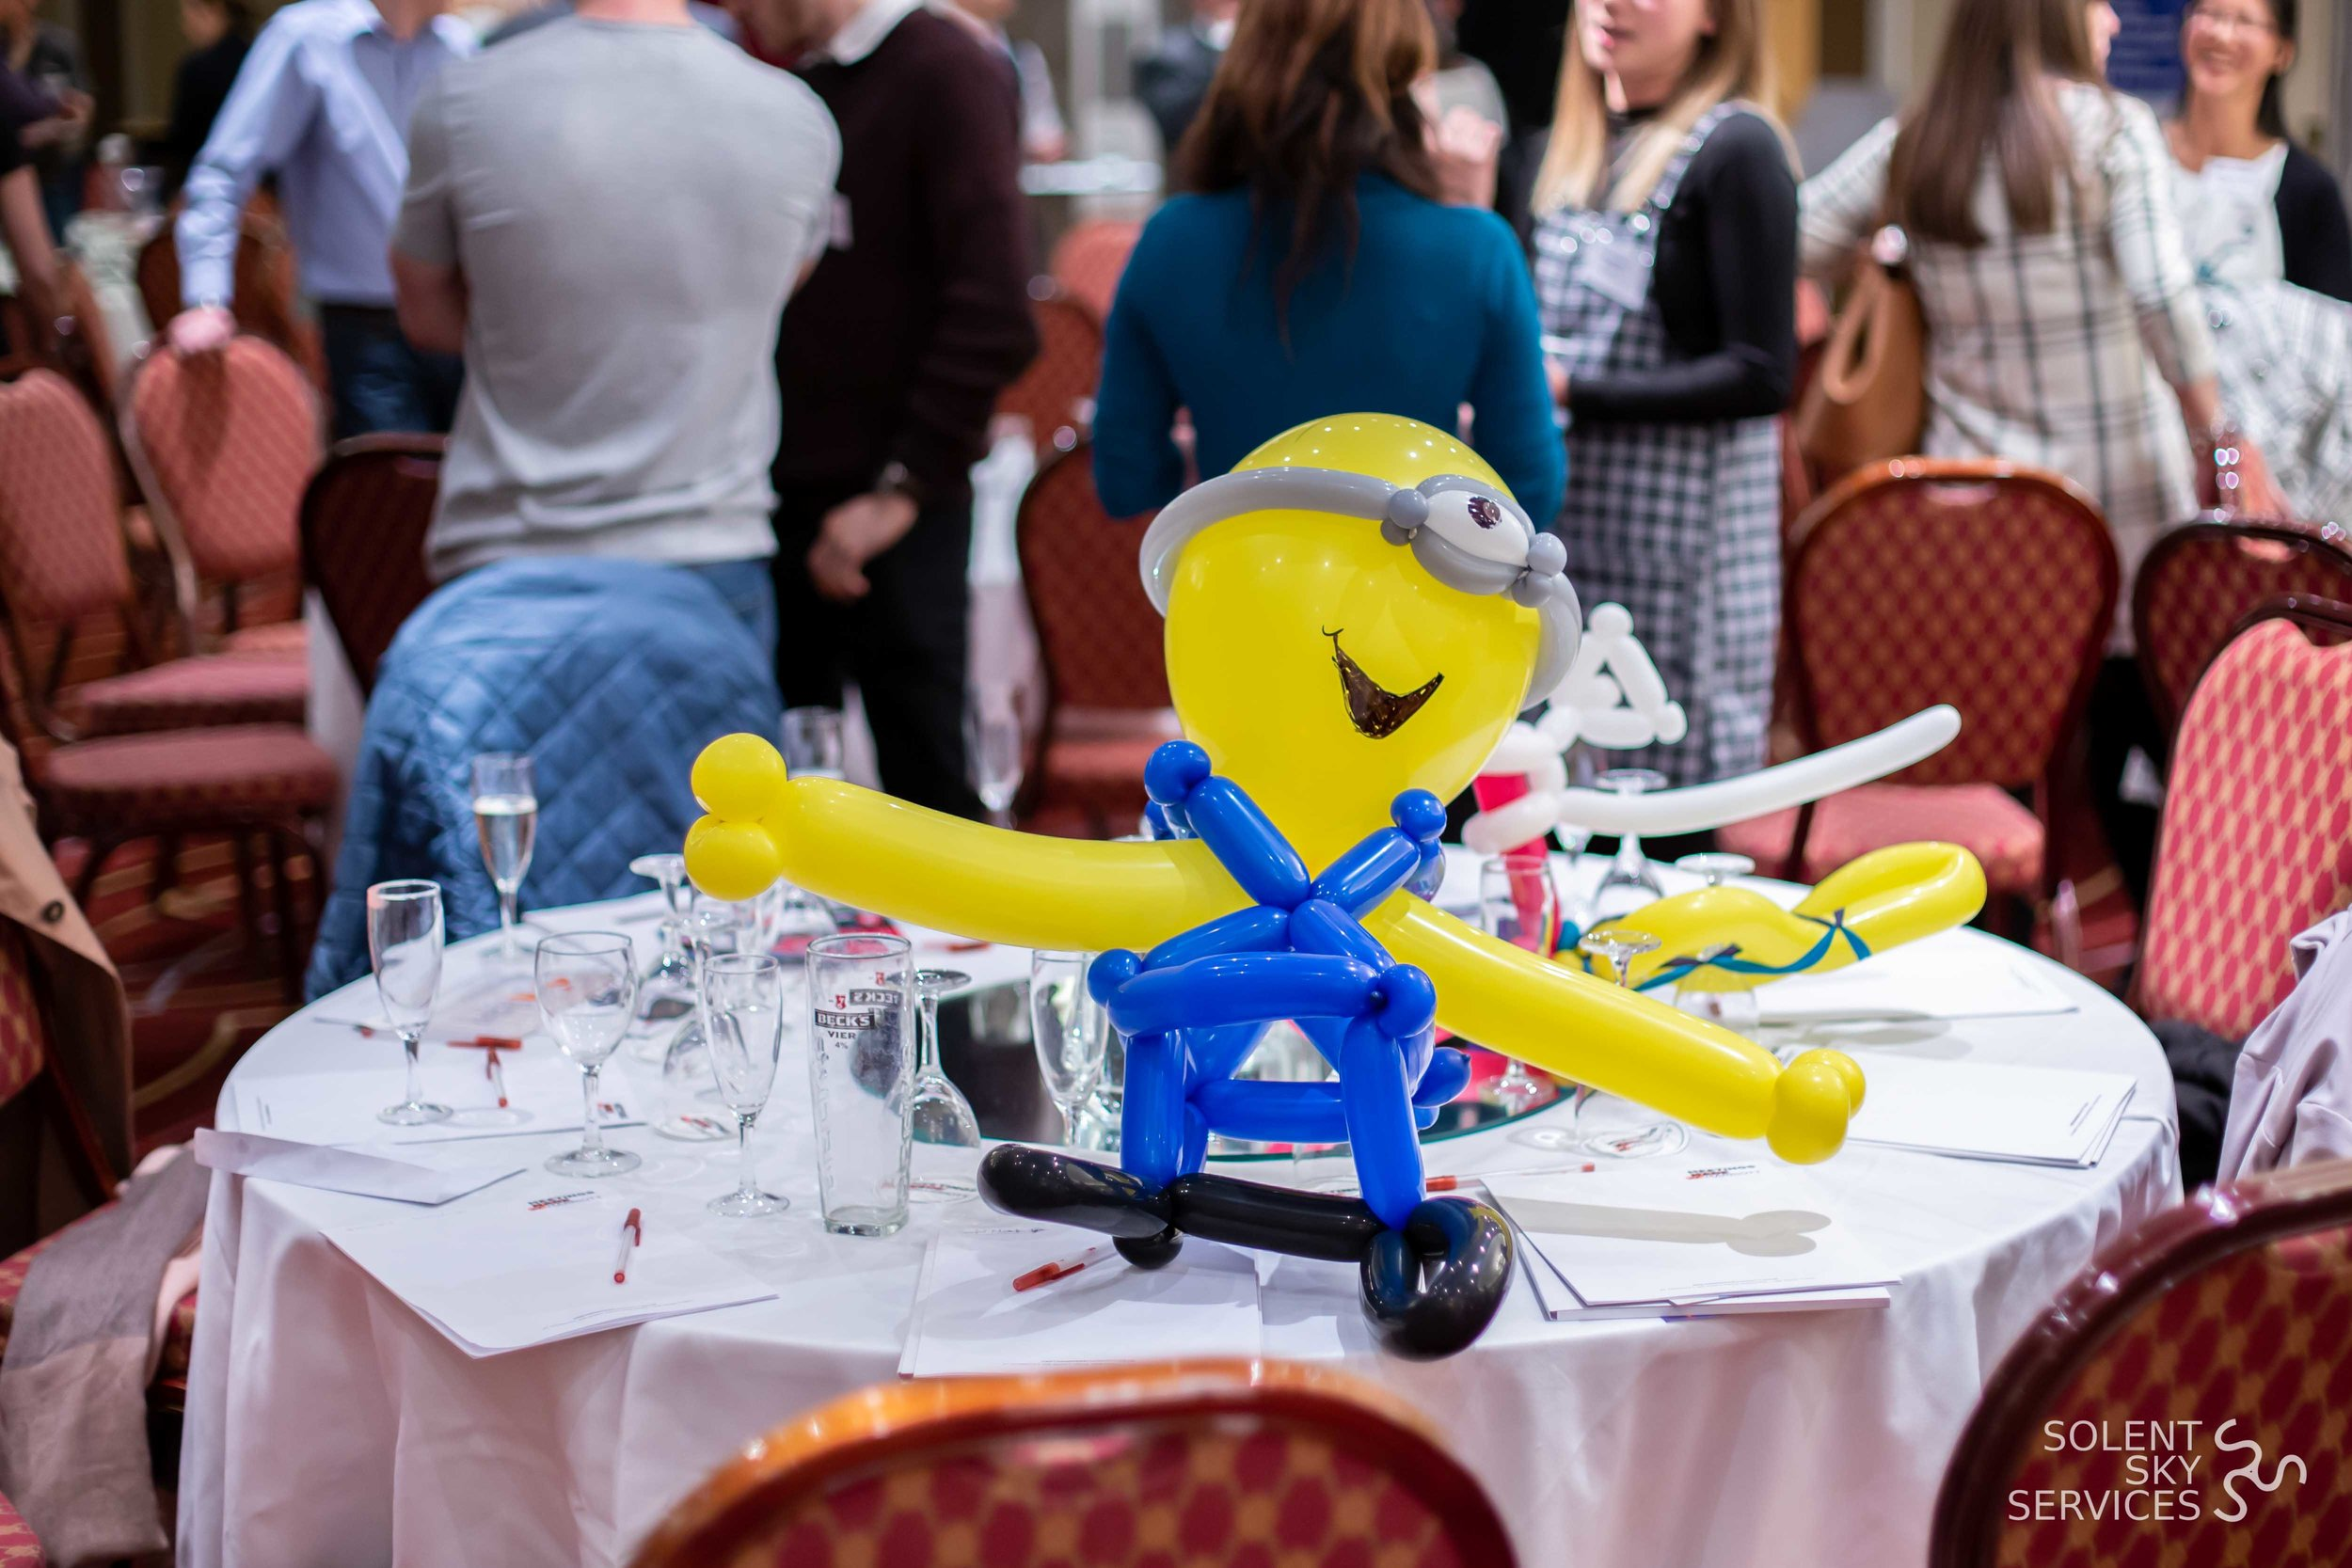 Synergy Success Networking Event #2 - Solent Sky Services-102.JPG